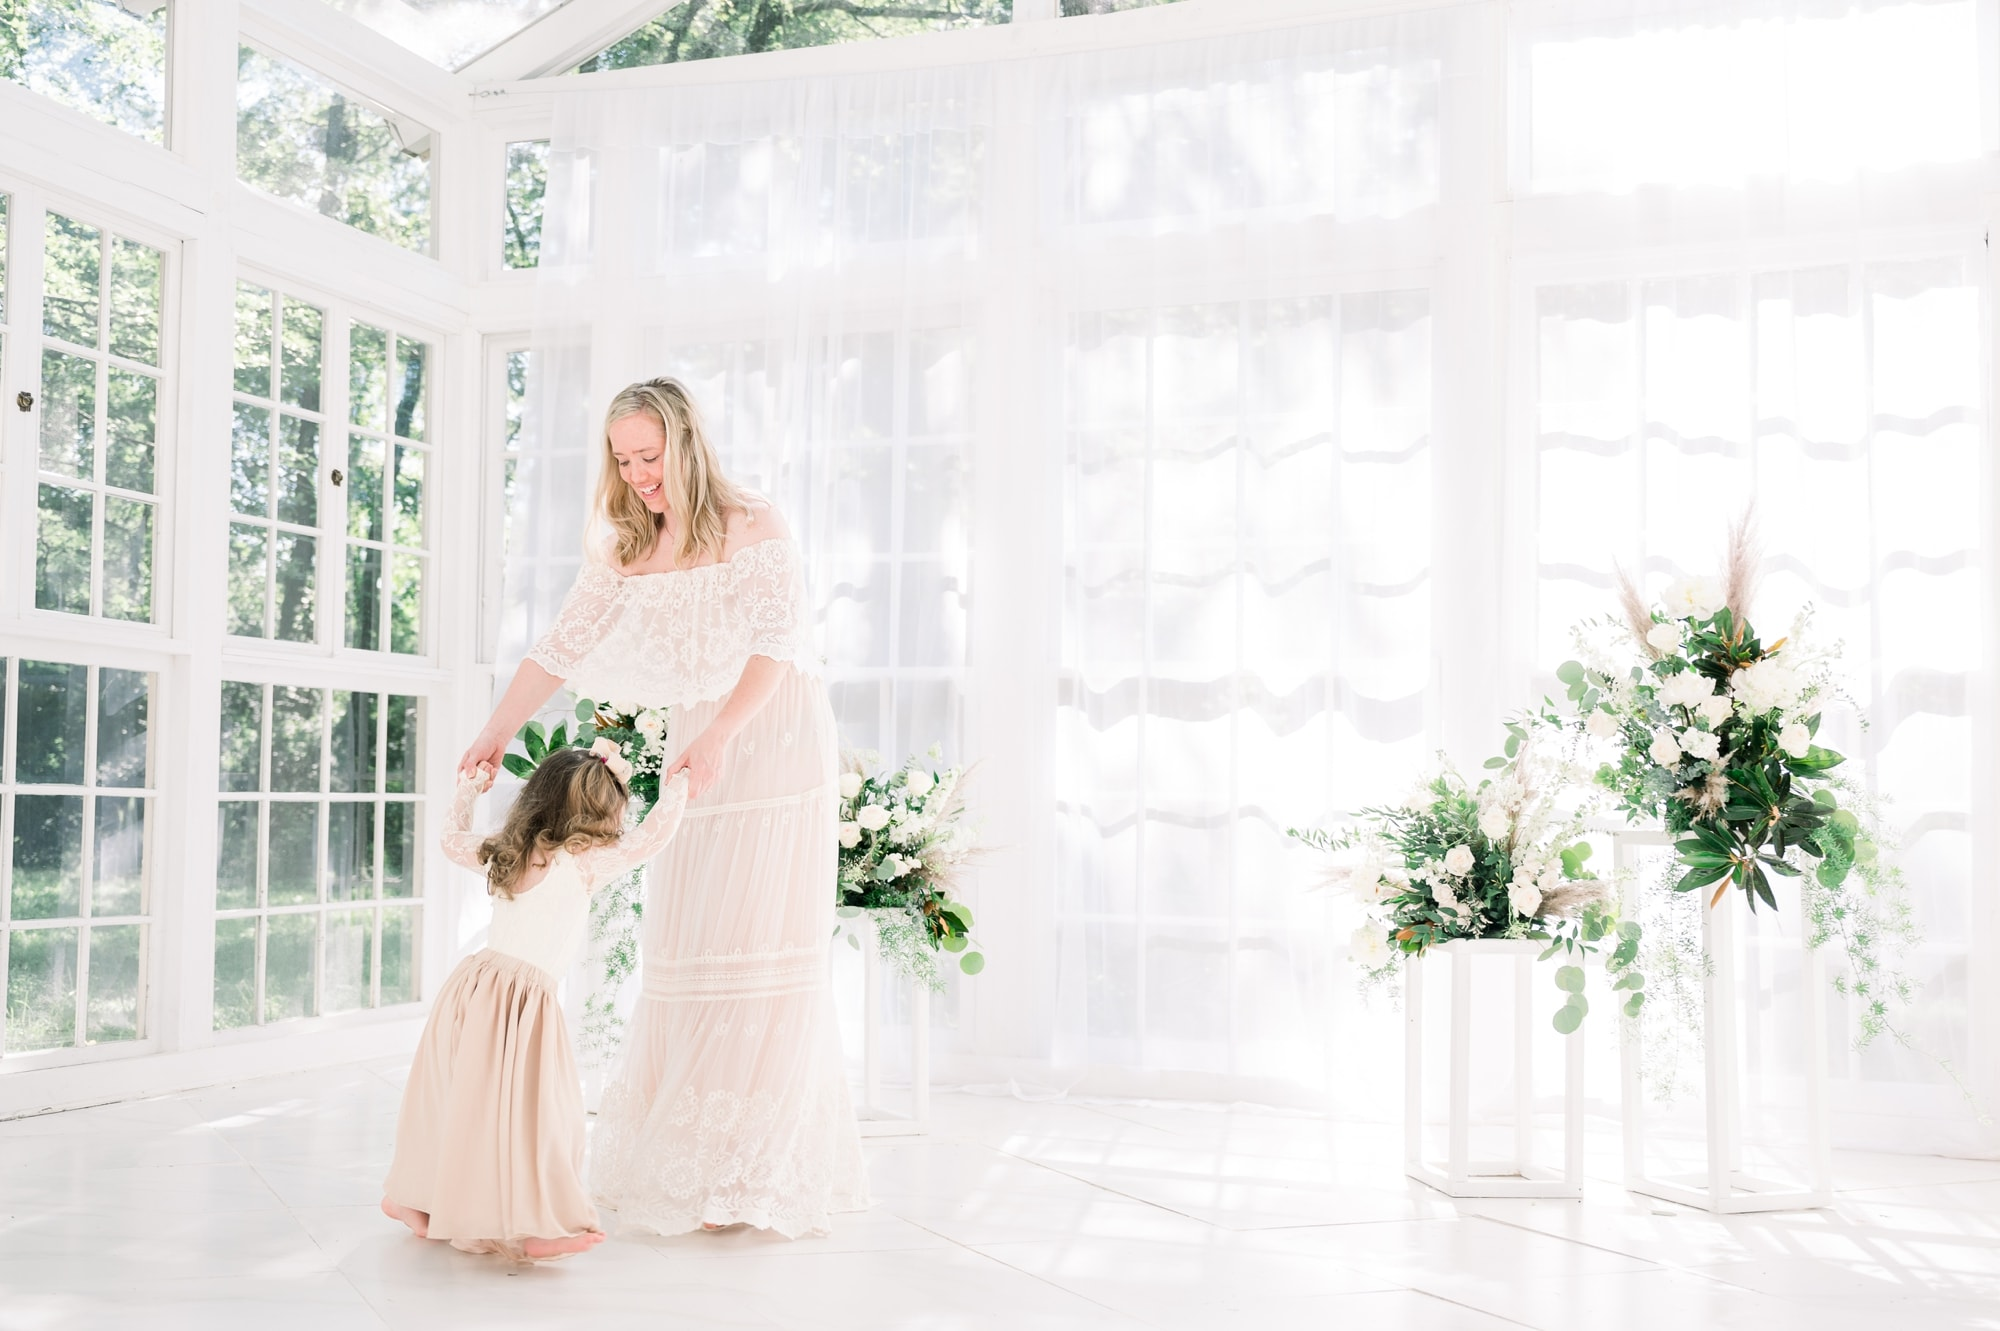 Mom wearing lace maxi dress dances with little girl during motherhood session. Photo by Dallas family photographer, Aimee Hamilton Photography.